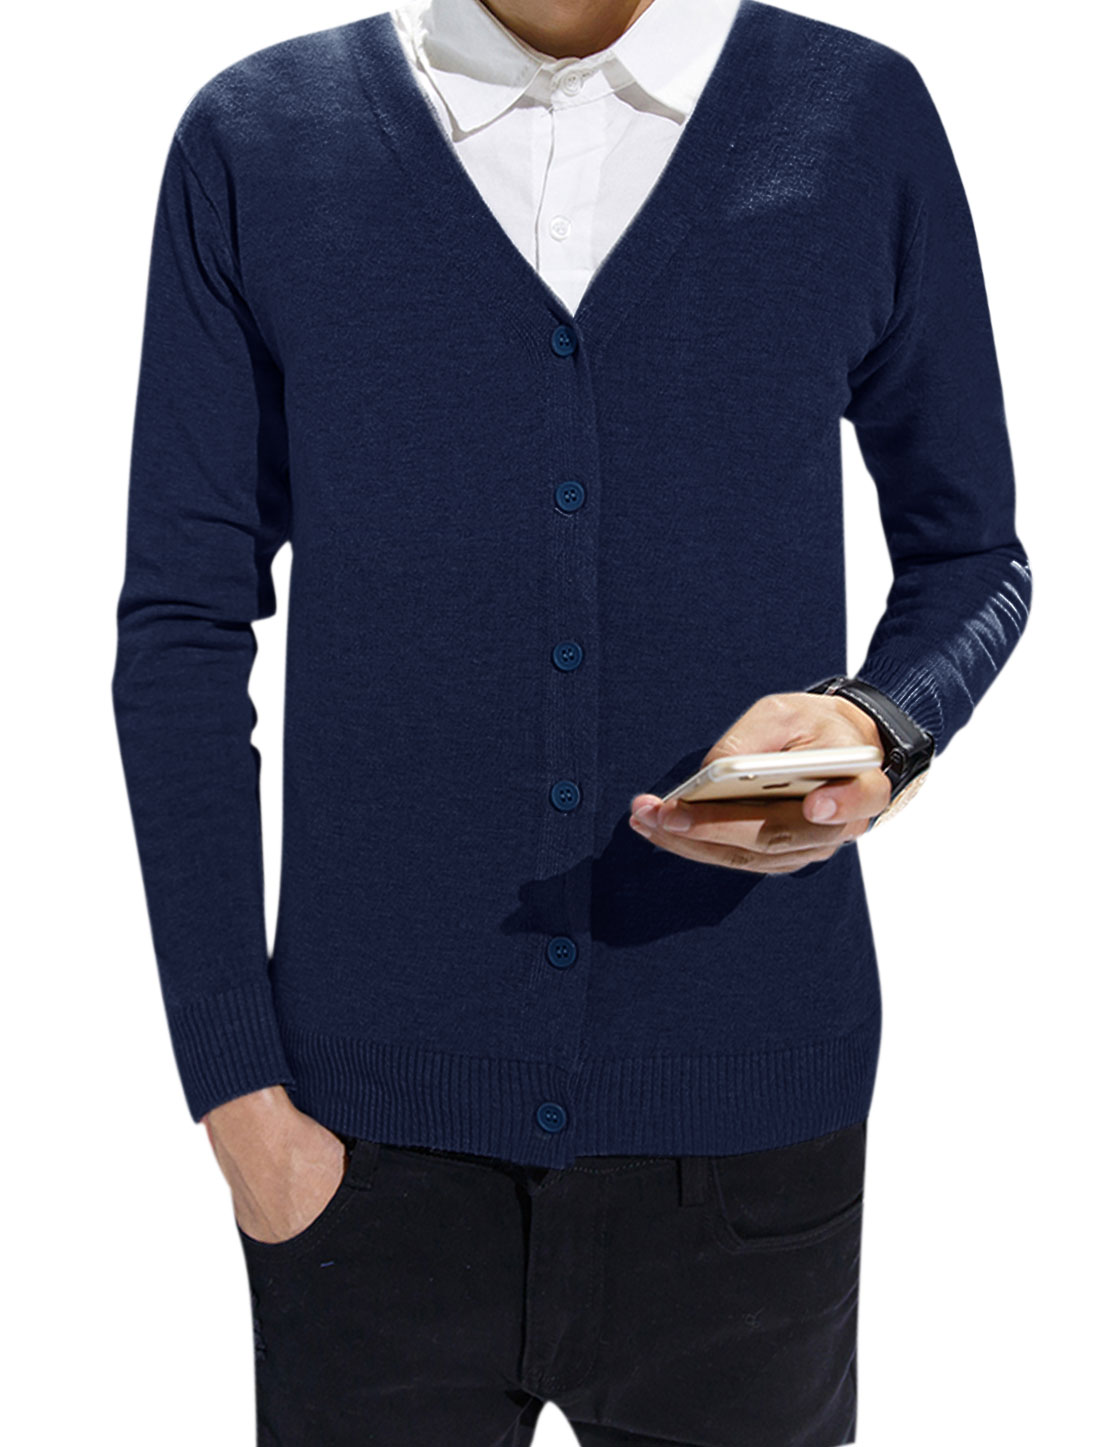 Men V Neck Long Sleeves Knitted Slim Fit Buttoned Cardigan Navy Blue S